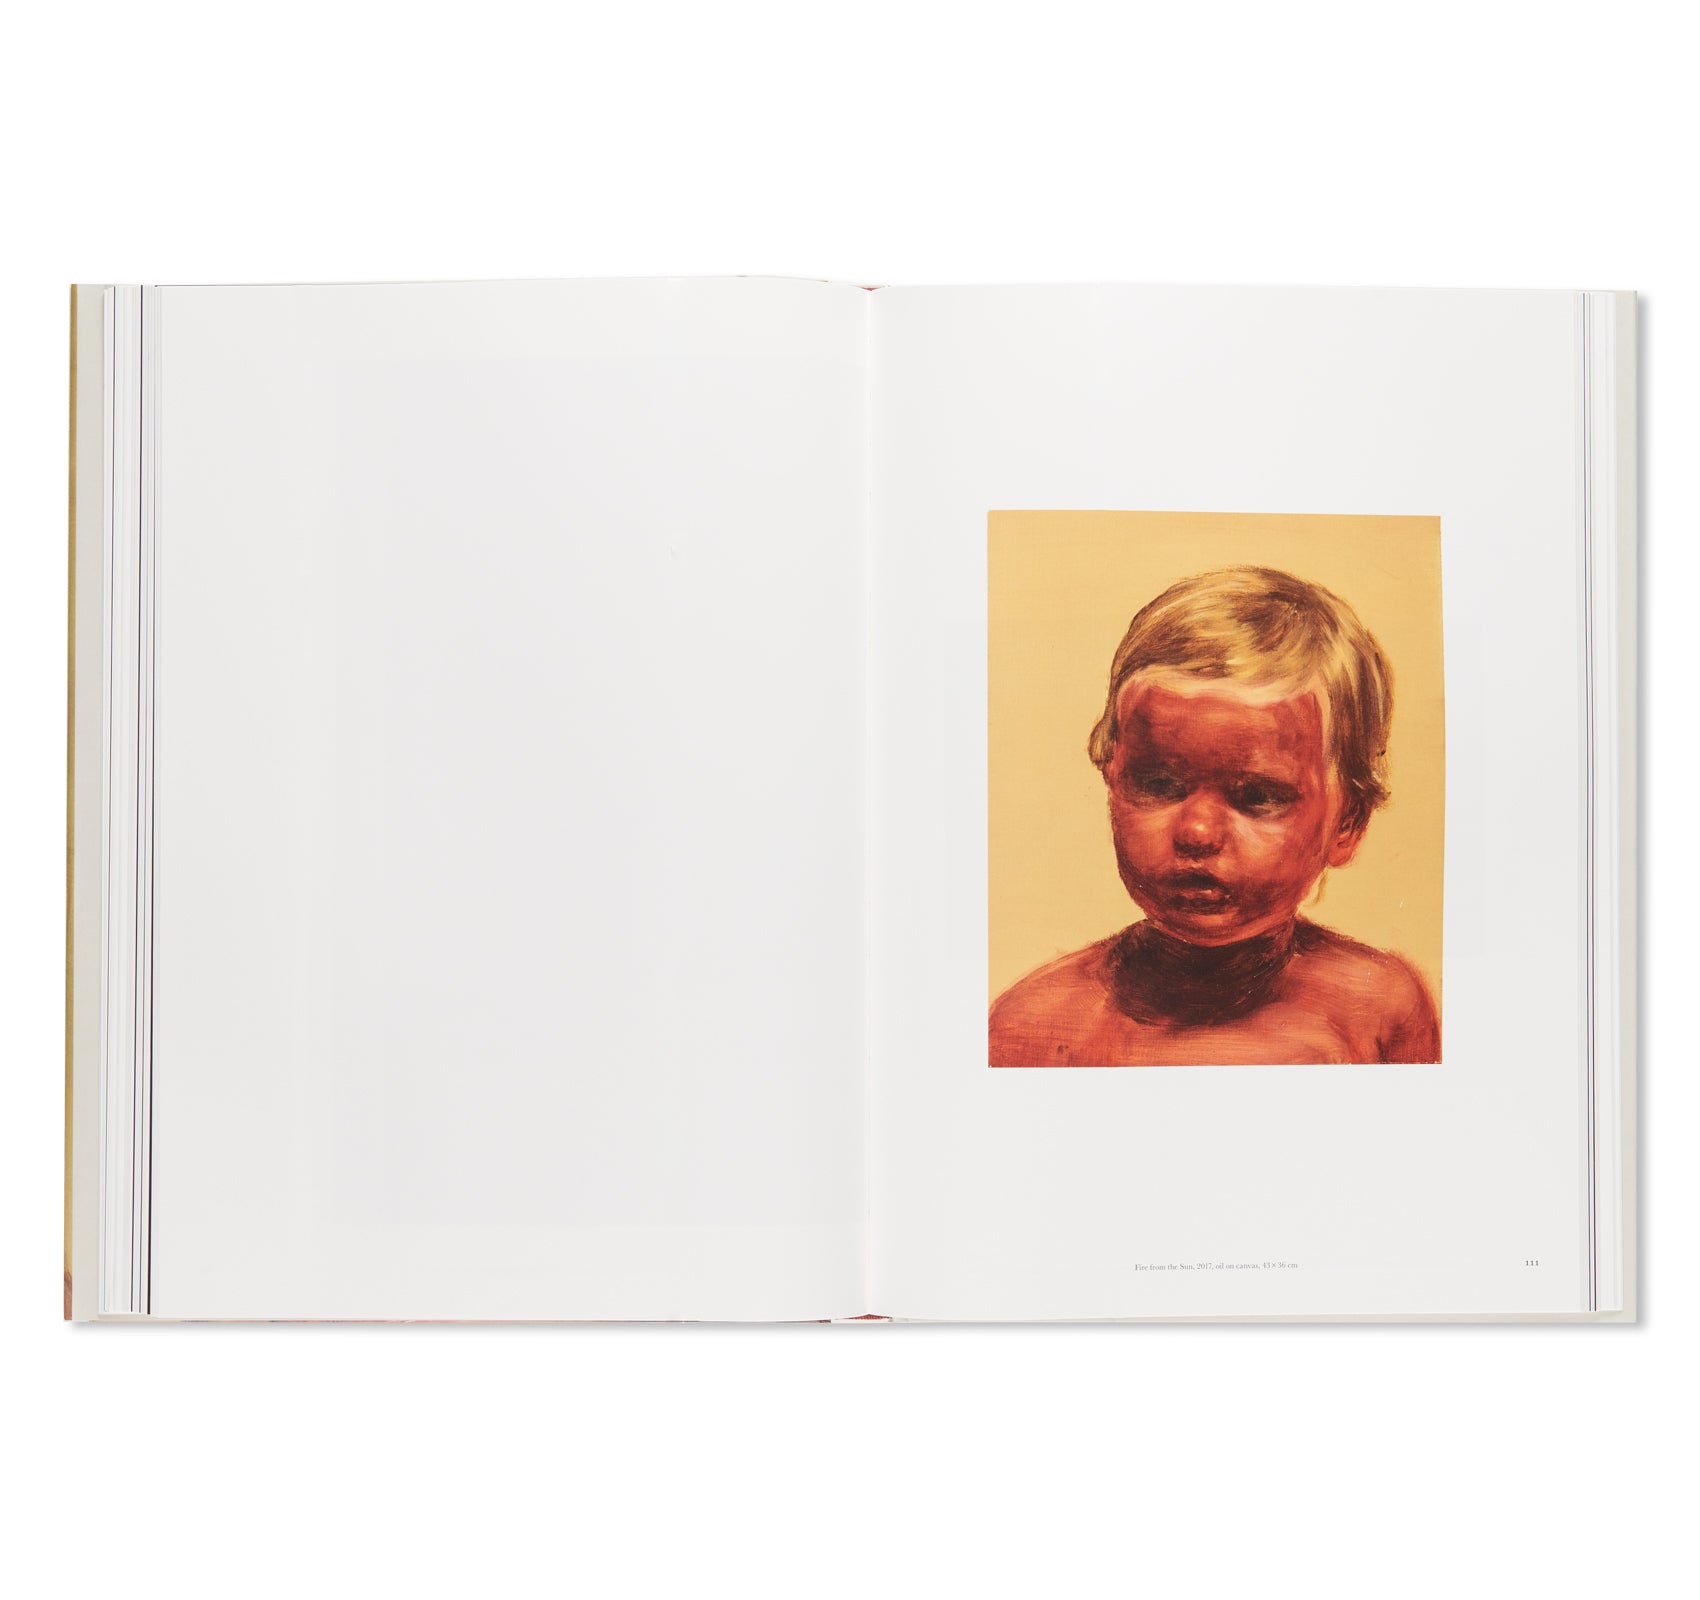 THE BADGER'S SONG by Michaël Borremans [SALE]